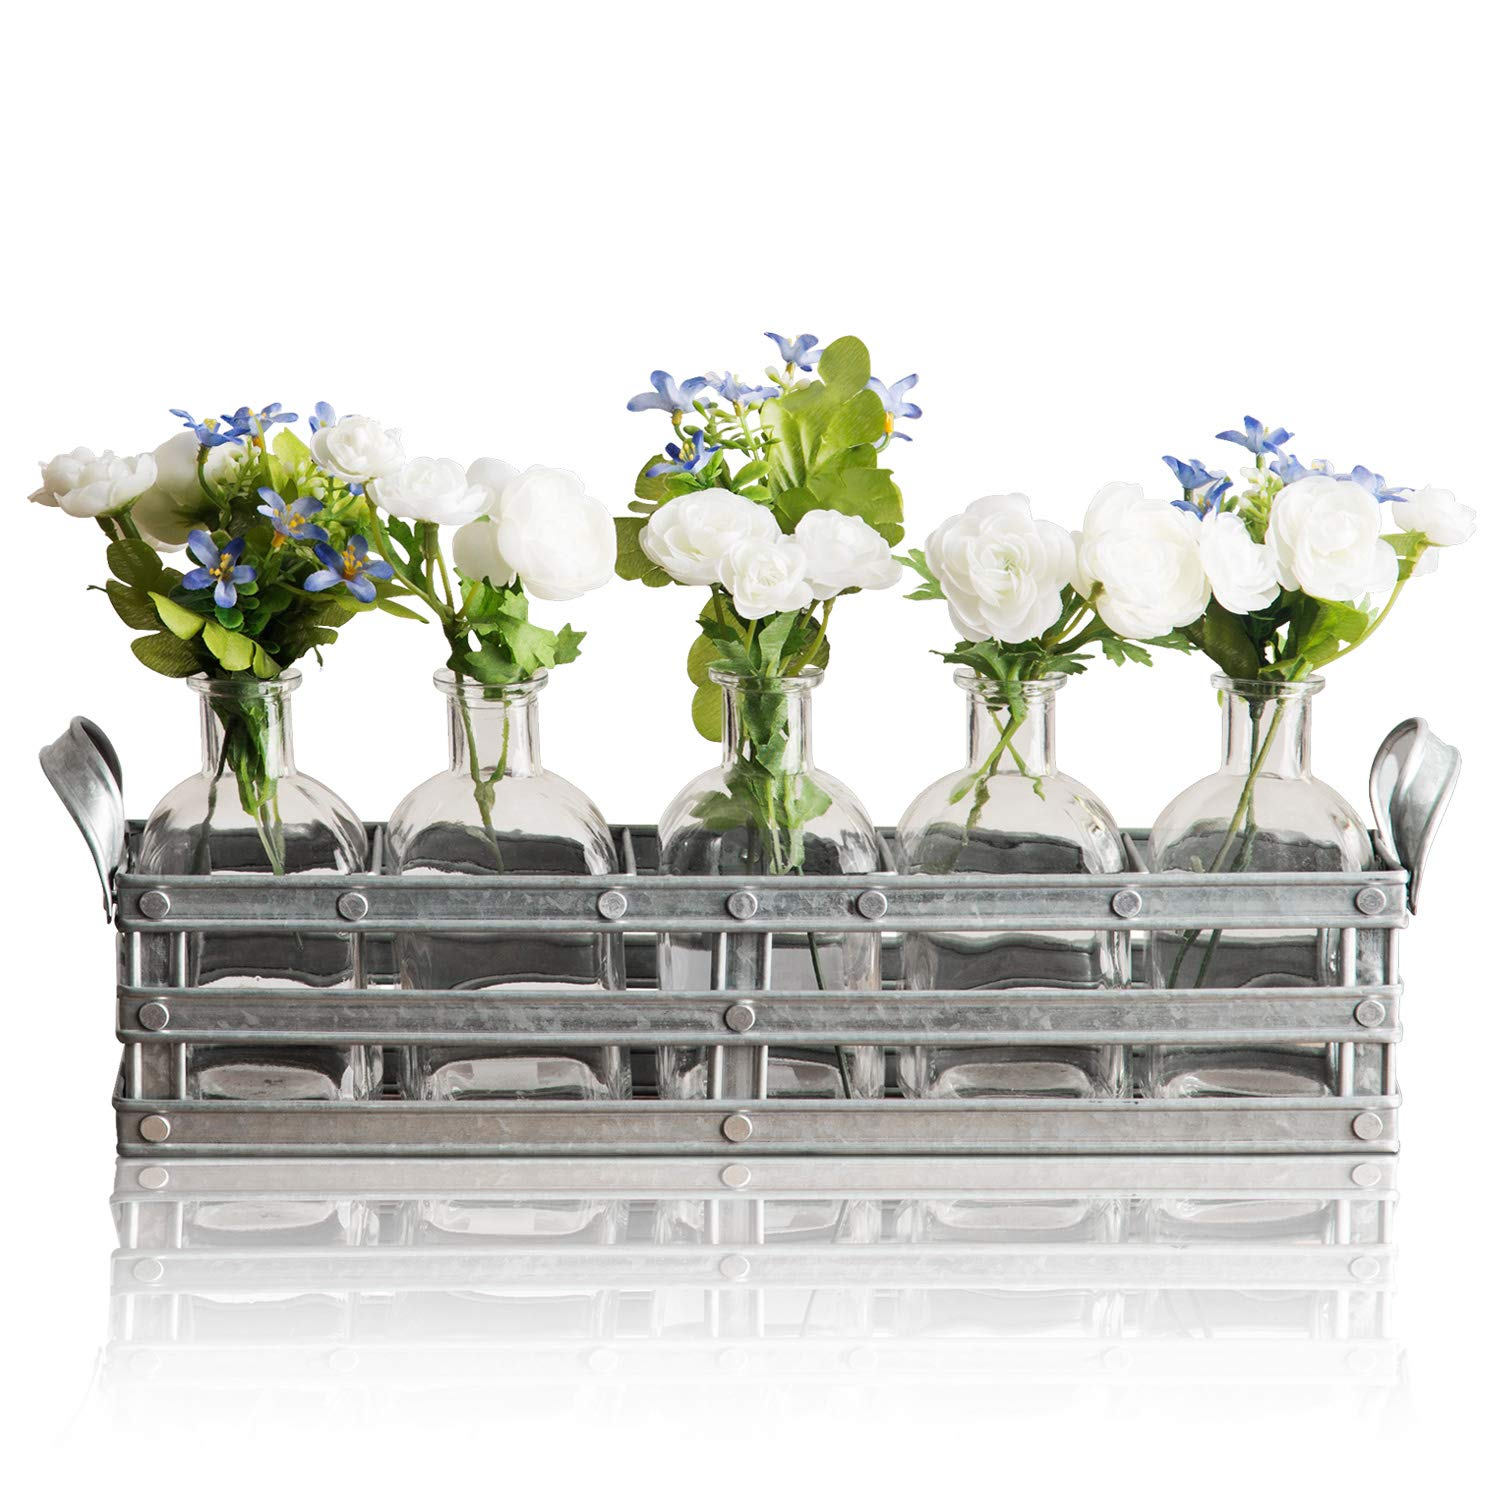 225 & Bud Flower Vases with Galvanized Holder - 5-Piece Set of Clear Glass Bottles for Home Decor Window-Sill Display Decorative Storage Party or Wedding ...